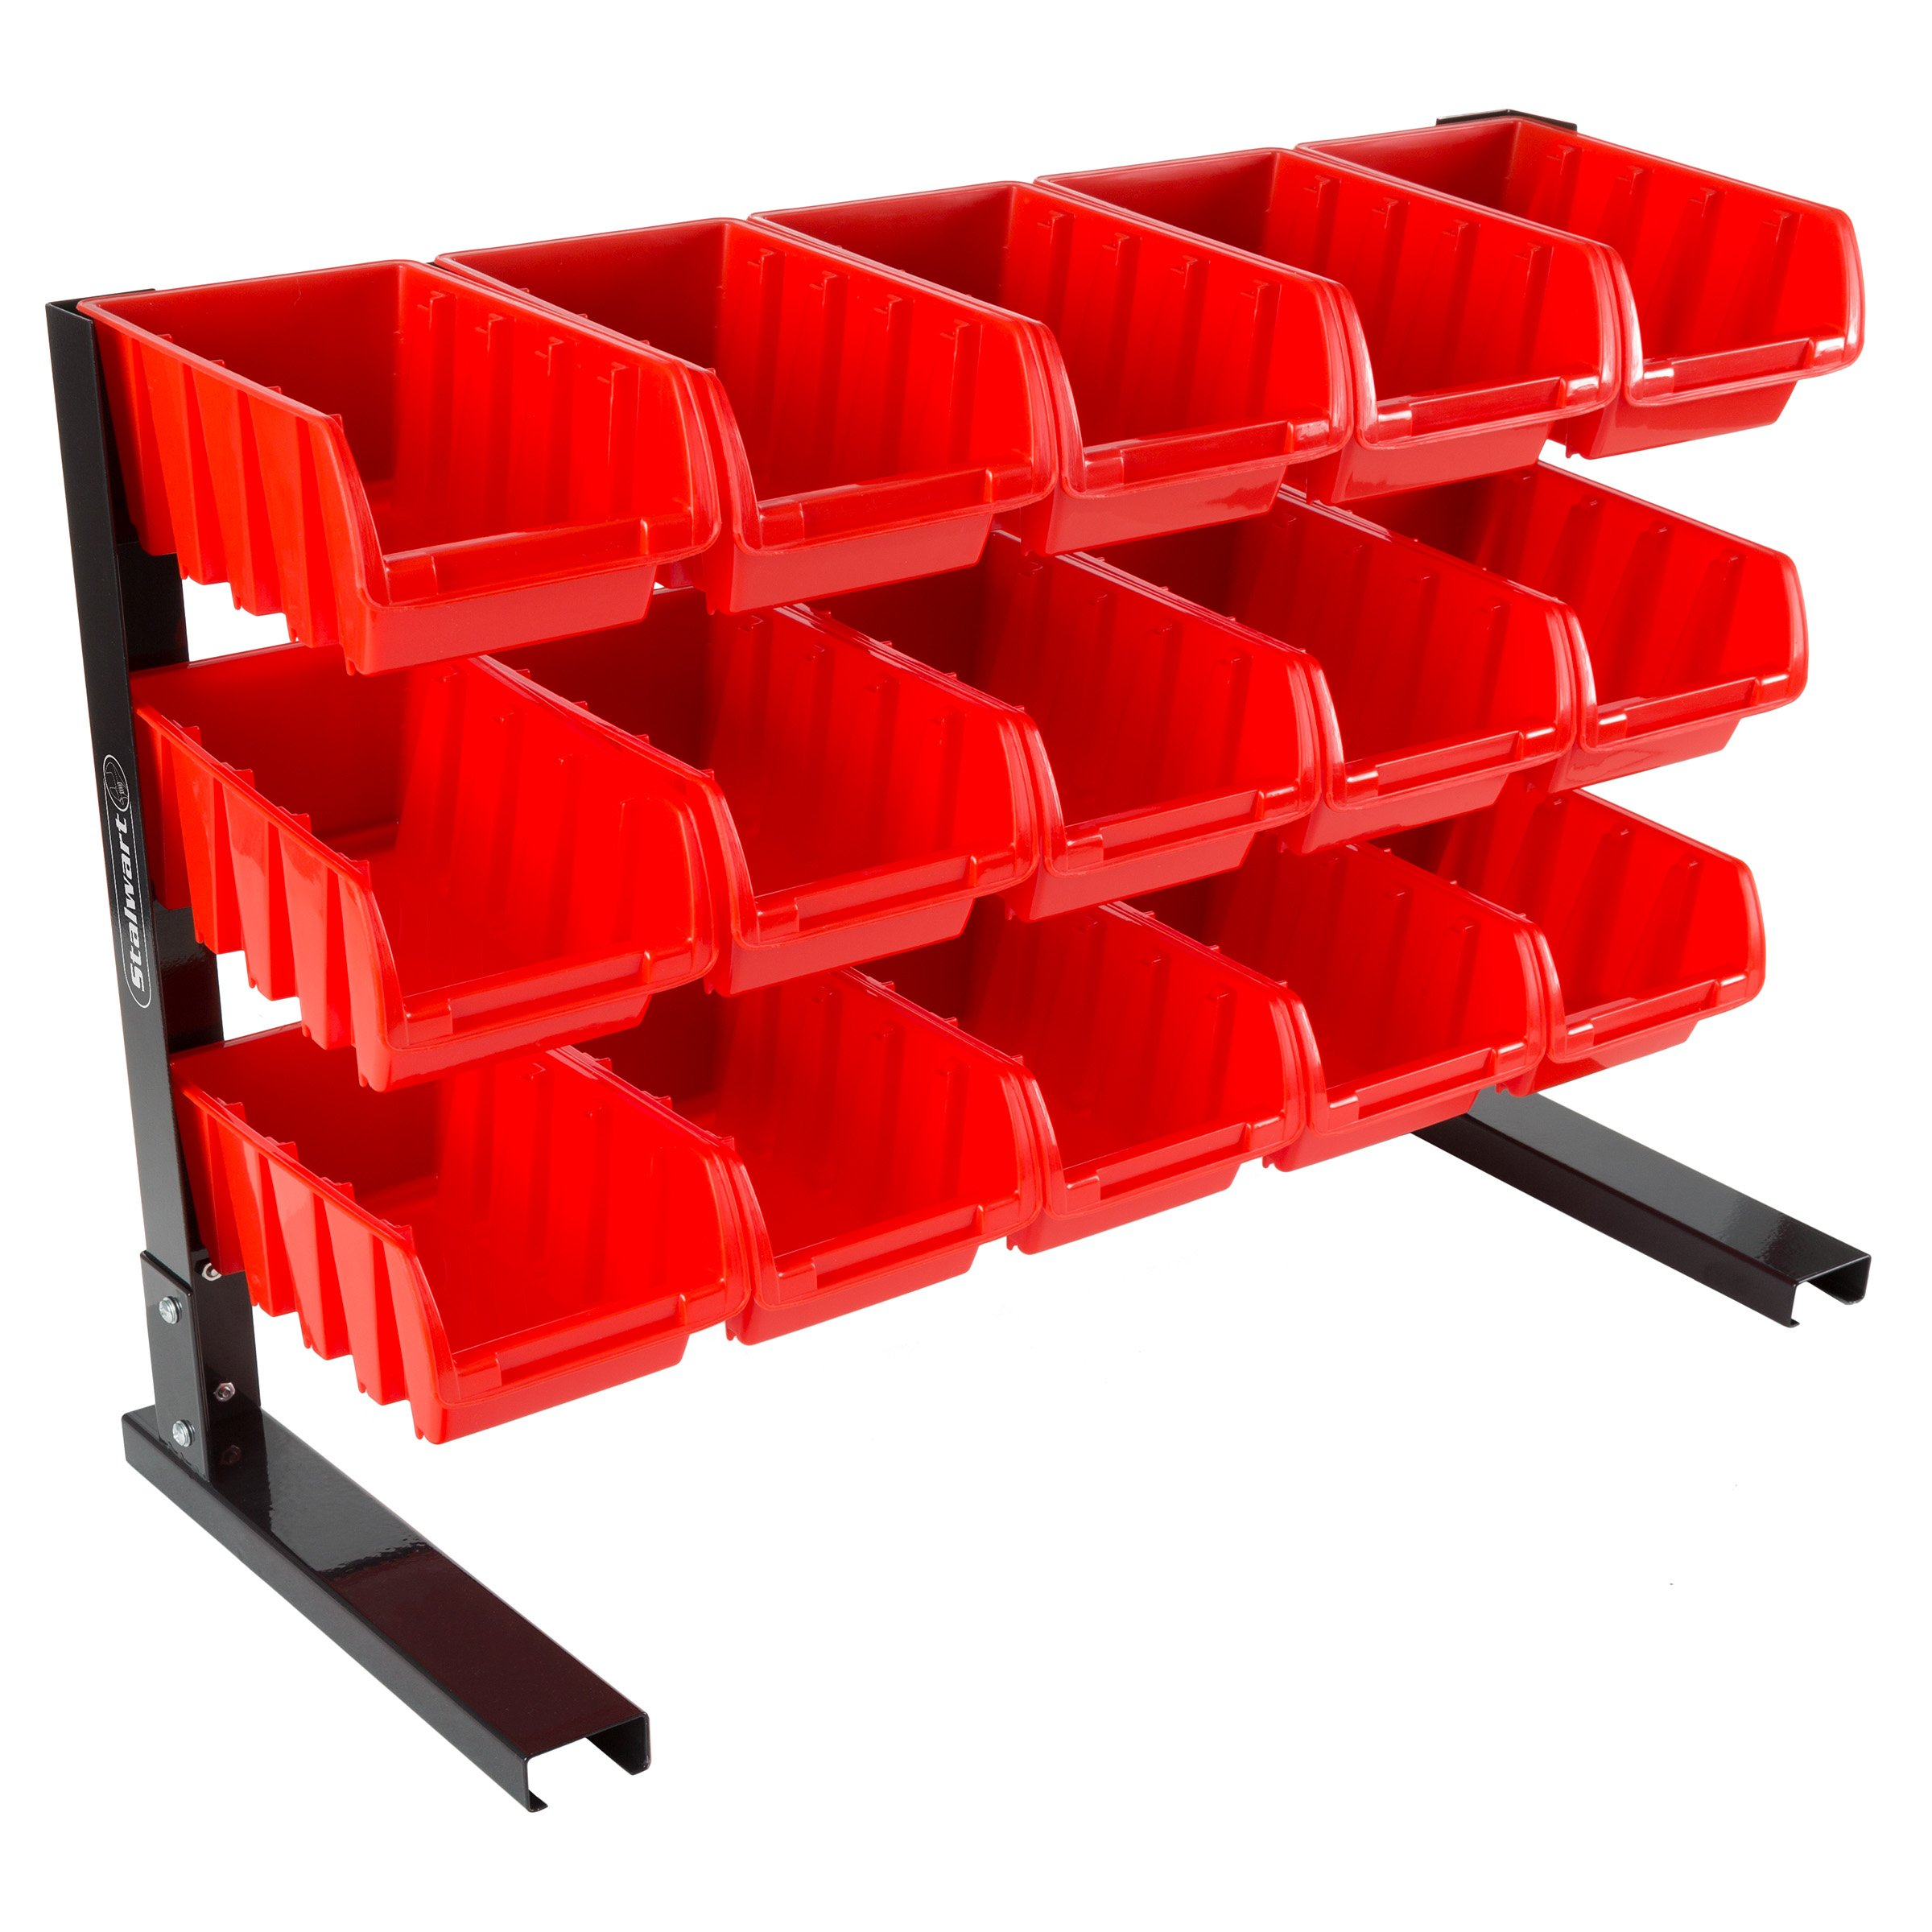 Tool Storage Shelf- Garage, Shed or Work Shop Organization-Wall Mountable Organizer Rack Has 61 Slots, 4 Hooks, and 2 Storage Compartments by Stalwart